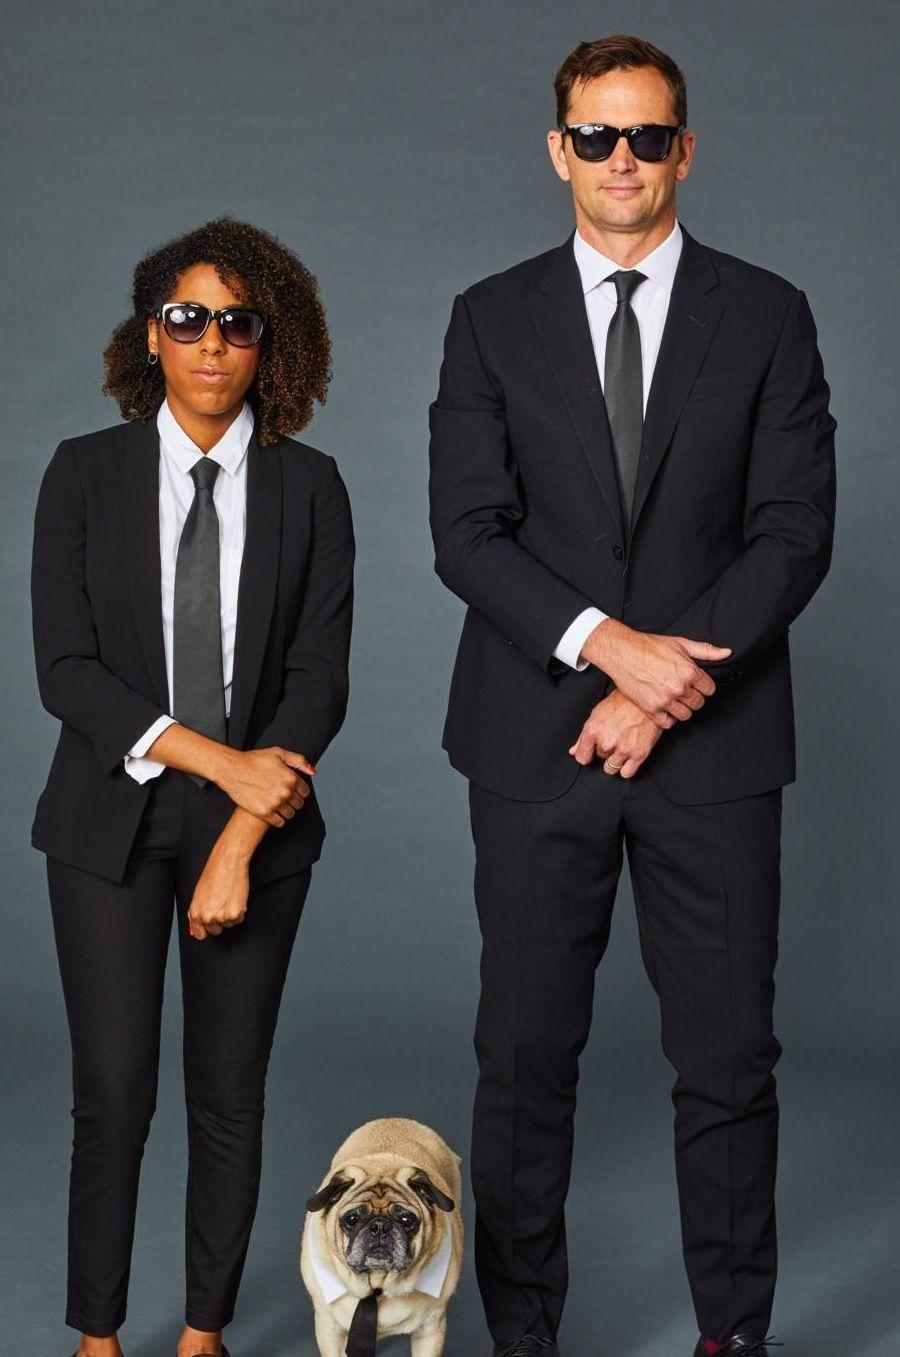 """<p>Couples and BFFs can easily recreate the iconic movie look with all-black suits, ties, sunglasses, and — if you have one — a pup! </p><p><a class=""""link rapid-noclick-resp"""" href=""""https://www.amazon.com/Handmade-Black-Ties-Skinny-Woven/dp/B079GGRBT4/?tag=syn-yahoo-20&ascsubtag=%5Bartid%7C10055.g.2750%5Bsrc%7Cyahoo-us"""" rel=""""nofollow noopener"""" target=""""_blank"""" data-ylk=""""slk:SHOP BLACK TIES"""">SHOP BLACK TIES</a></p><p><strong>RELATED:</strong> <a href=""""https://www.goodhousekeeping.com/holidays/halloween-ideas/g21969310/best-friend-halloween-costumes/"""" rel=""""nofollow noopener"""" target=""""_blank"""" data-ylk=""""slk:Creative Best Friend Halloween Costumes"""" class=""""link rapid-noclick-resp"""">Creative Best Friend Halloween Costumes</a></p>"""